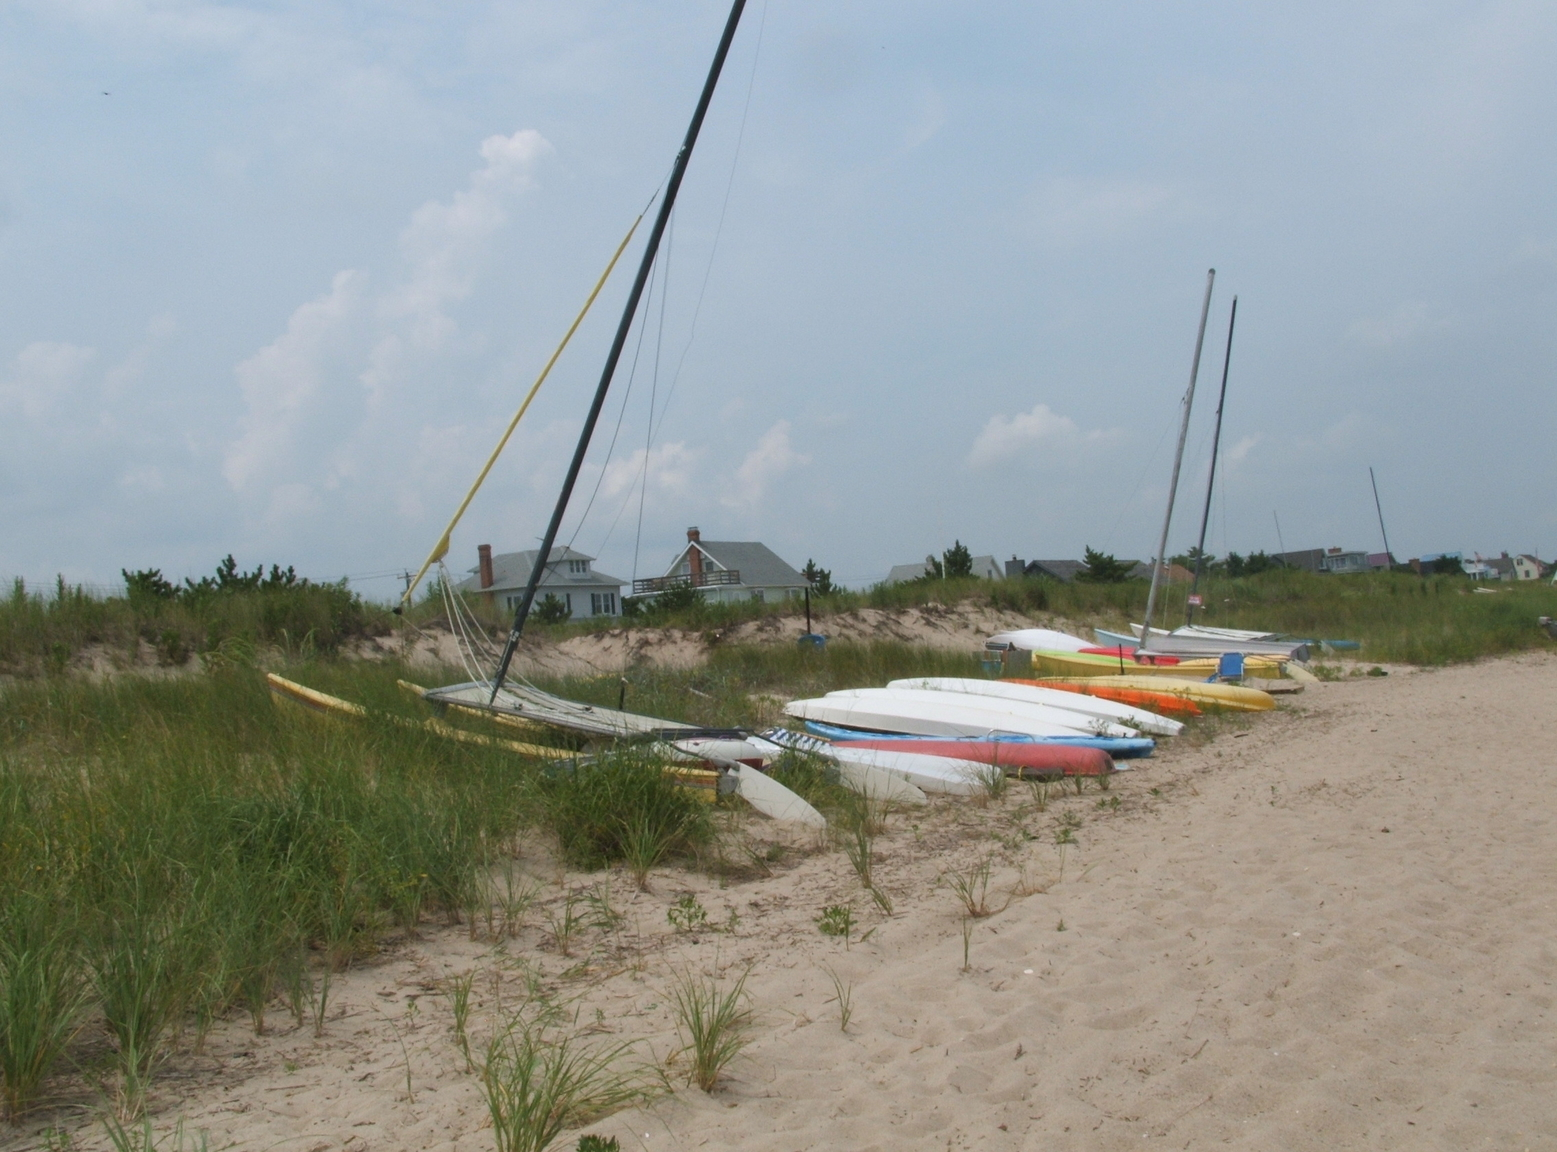 Boats on a Dune